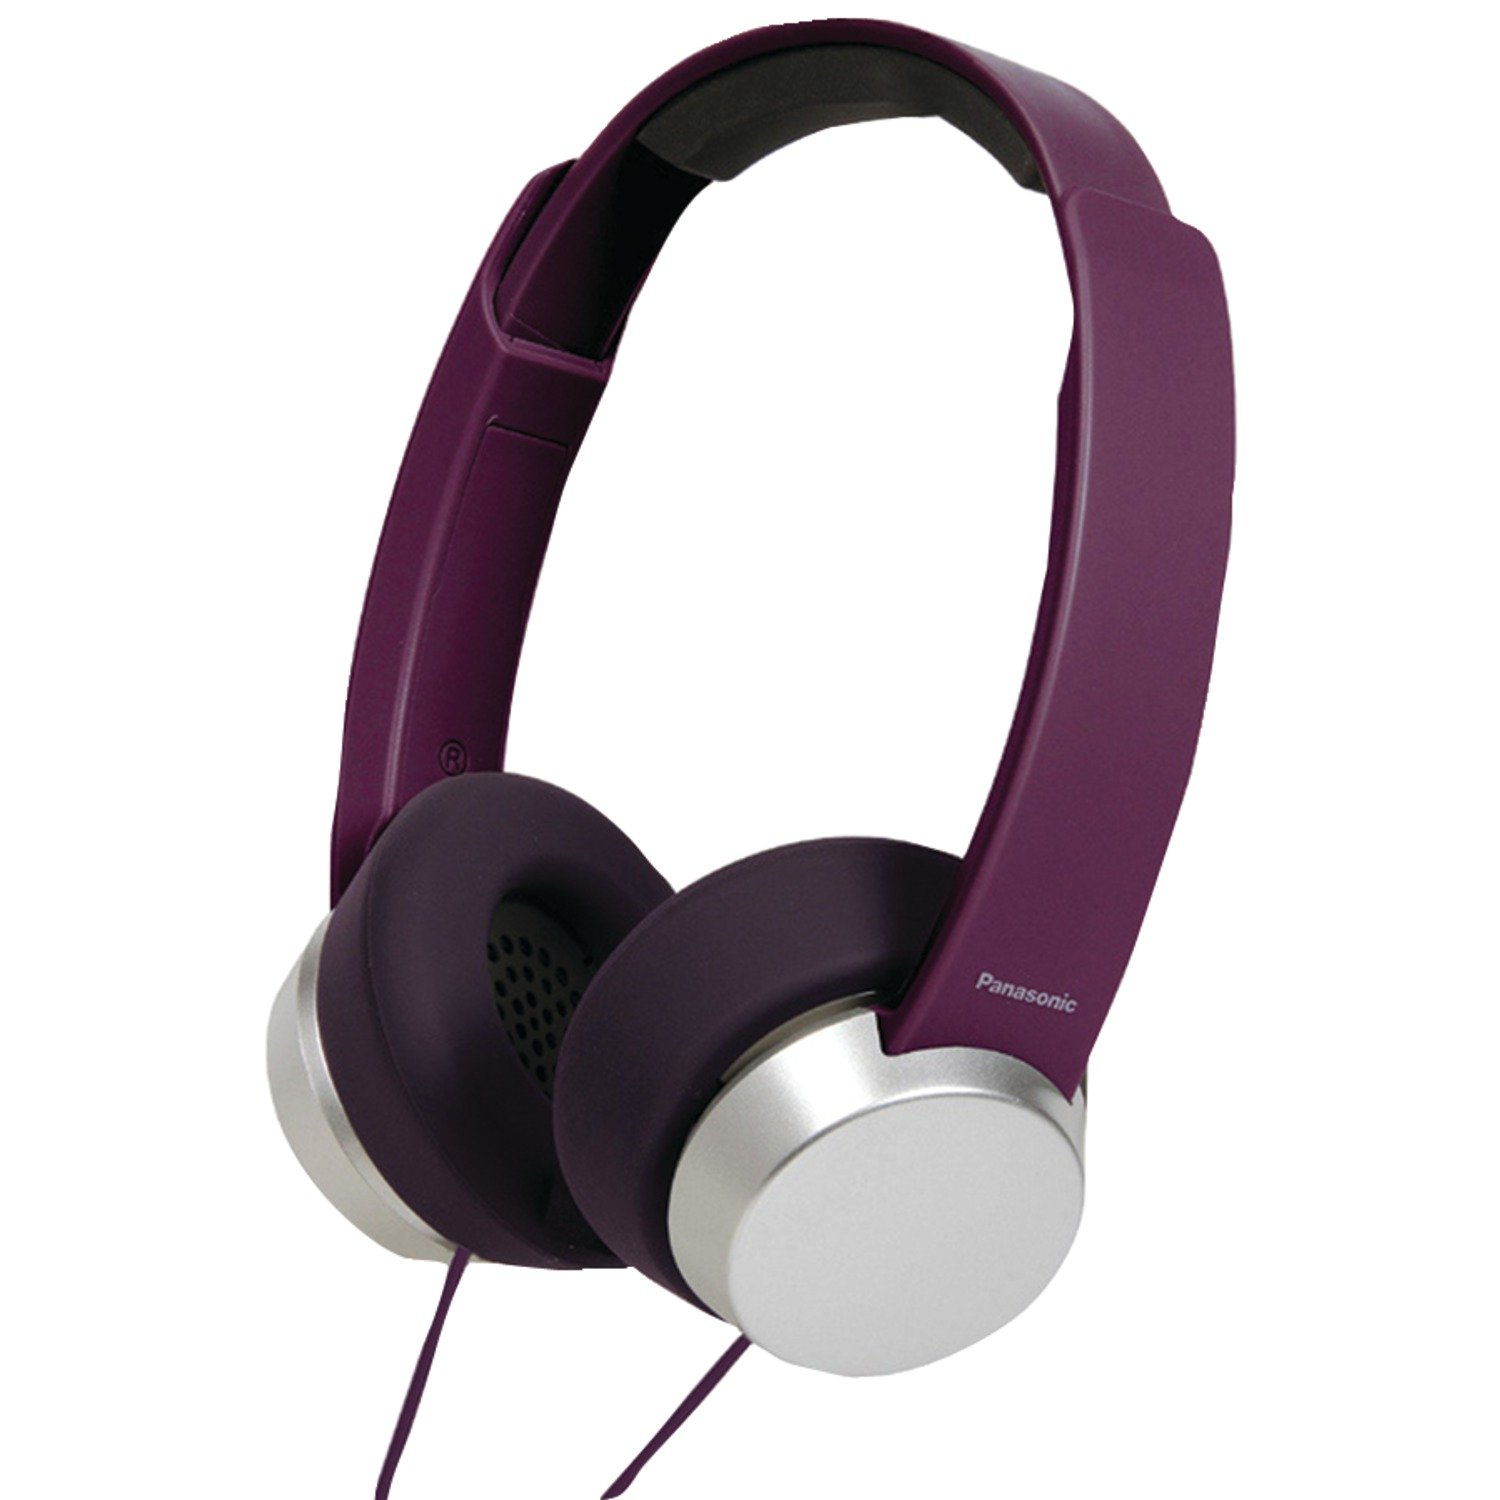 Panasonic RP-HXD3WPP-V Headphones,Purple/silver